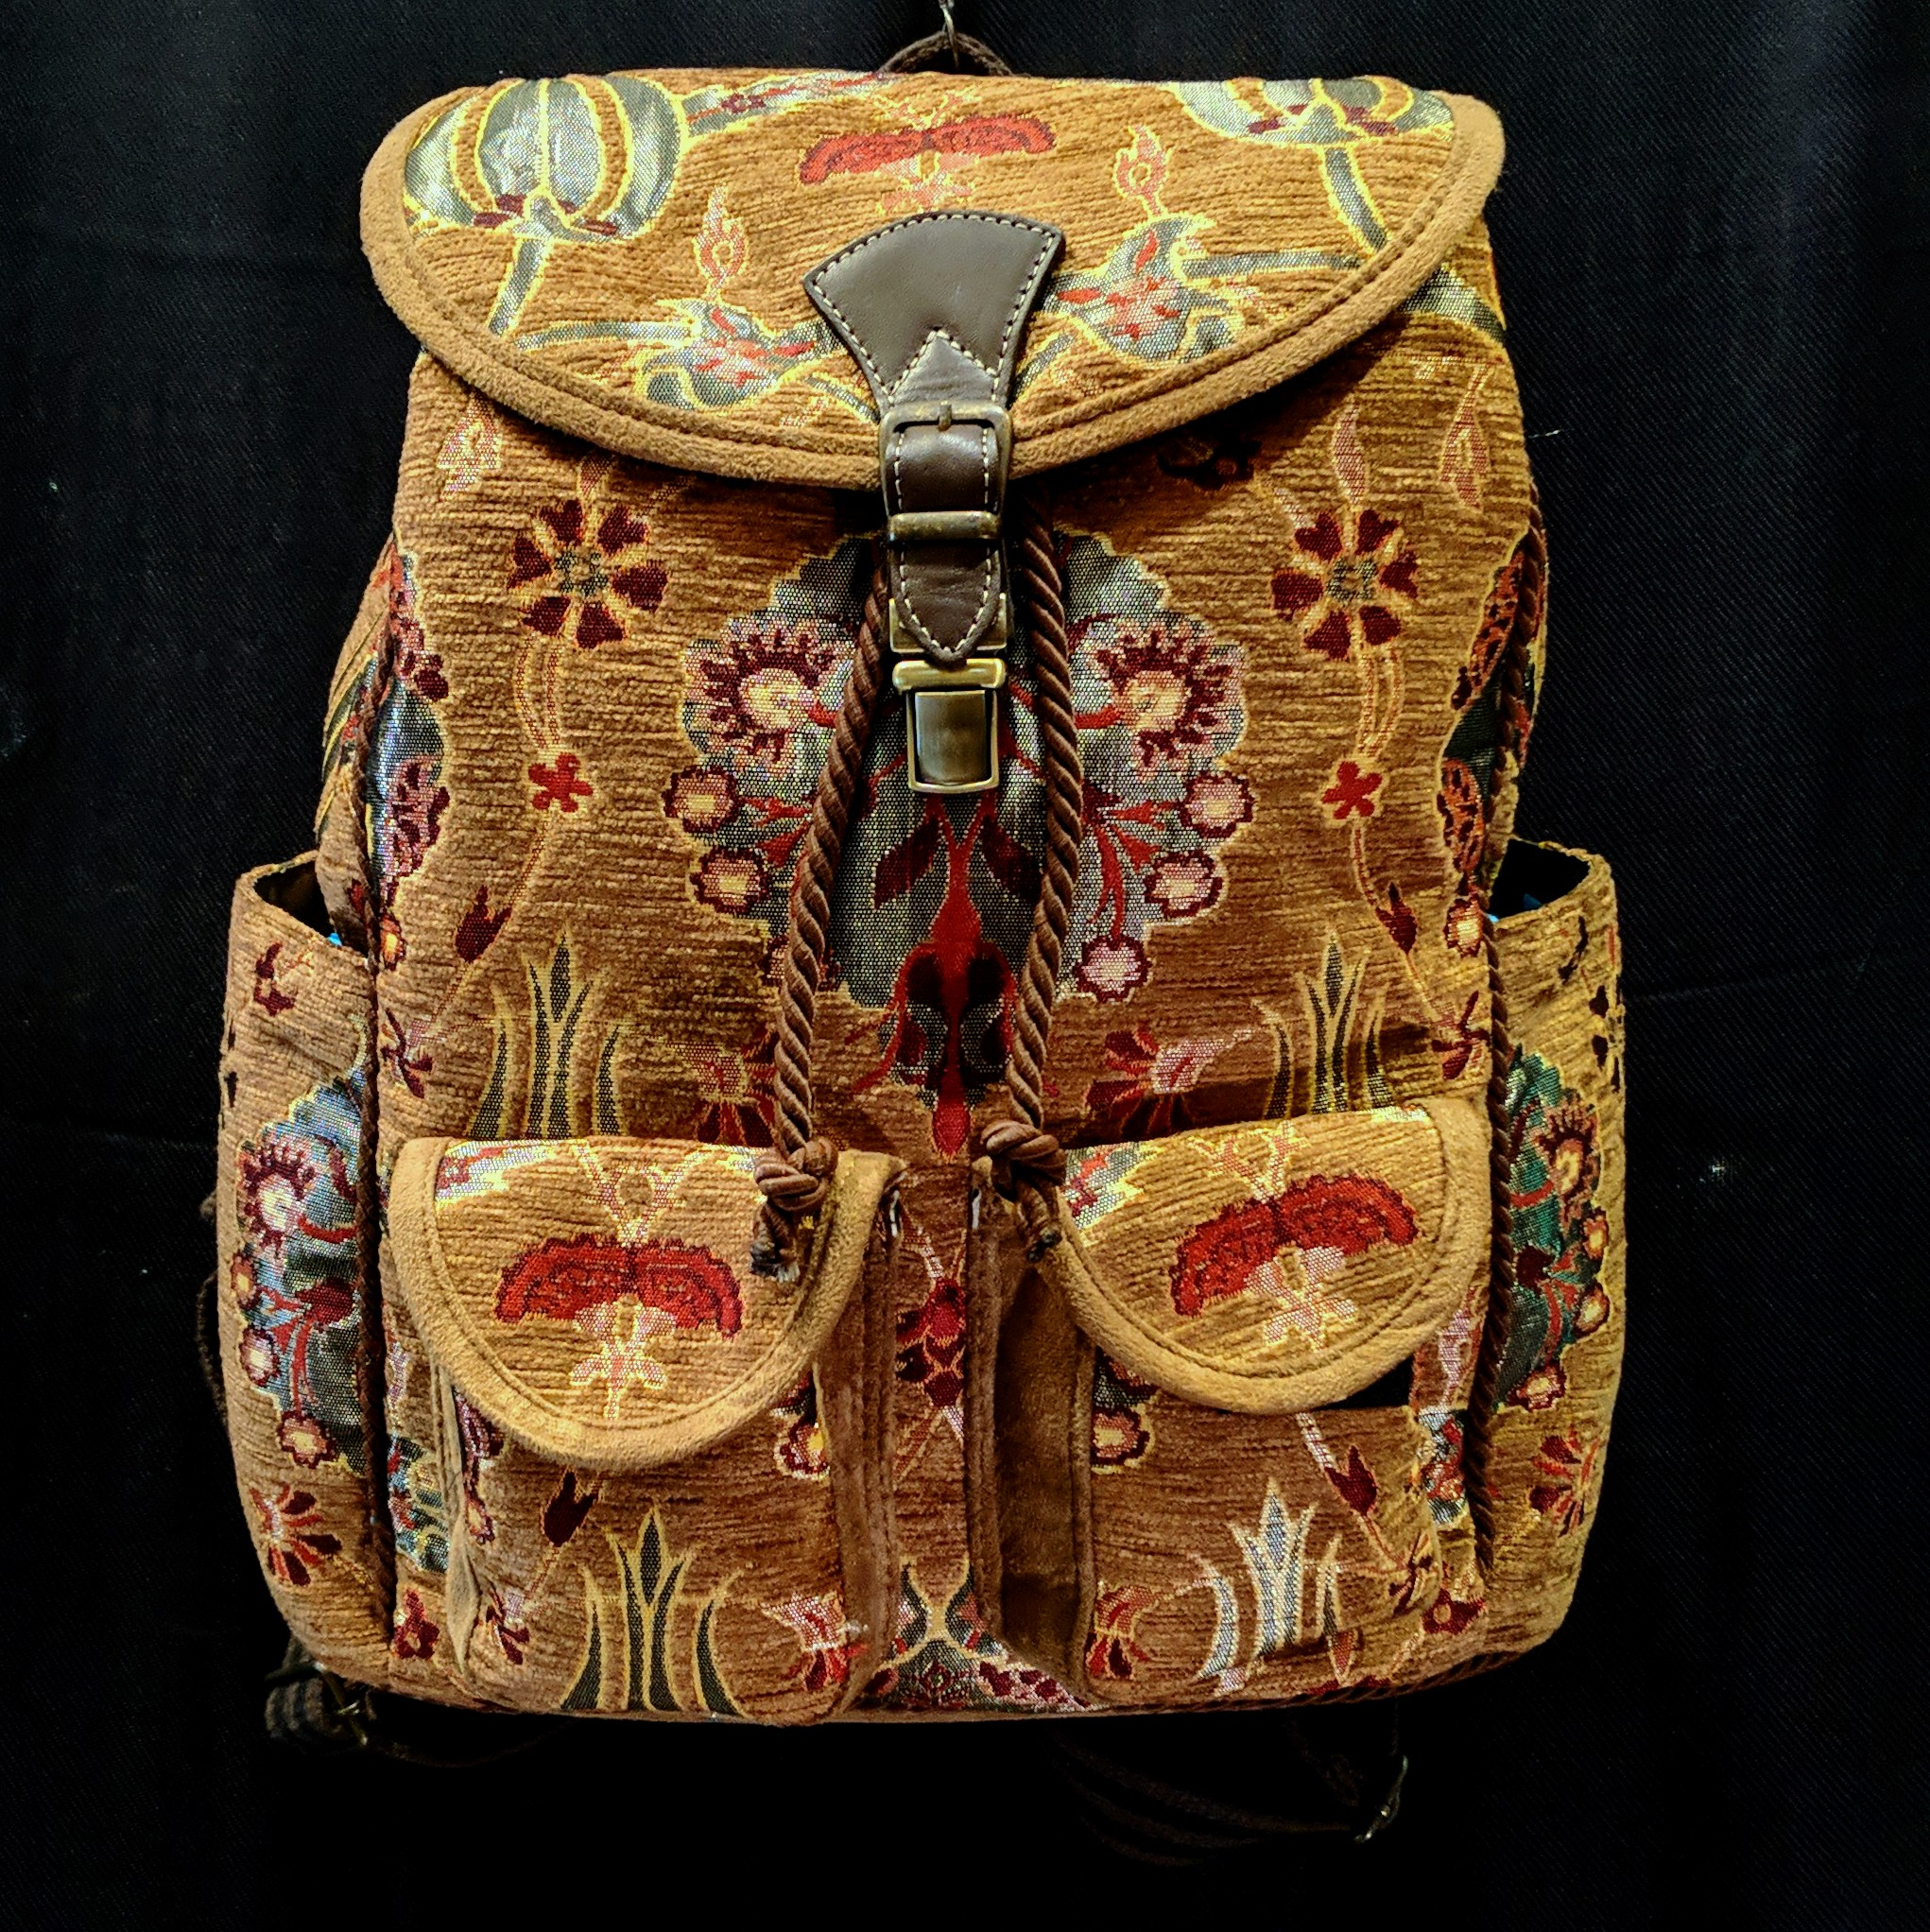 Handmade Pull String And Clasp Closure Large Textile Backpack 15x13x7